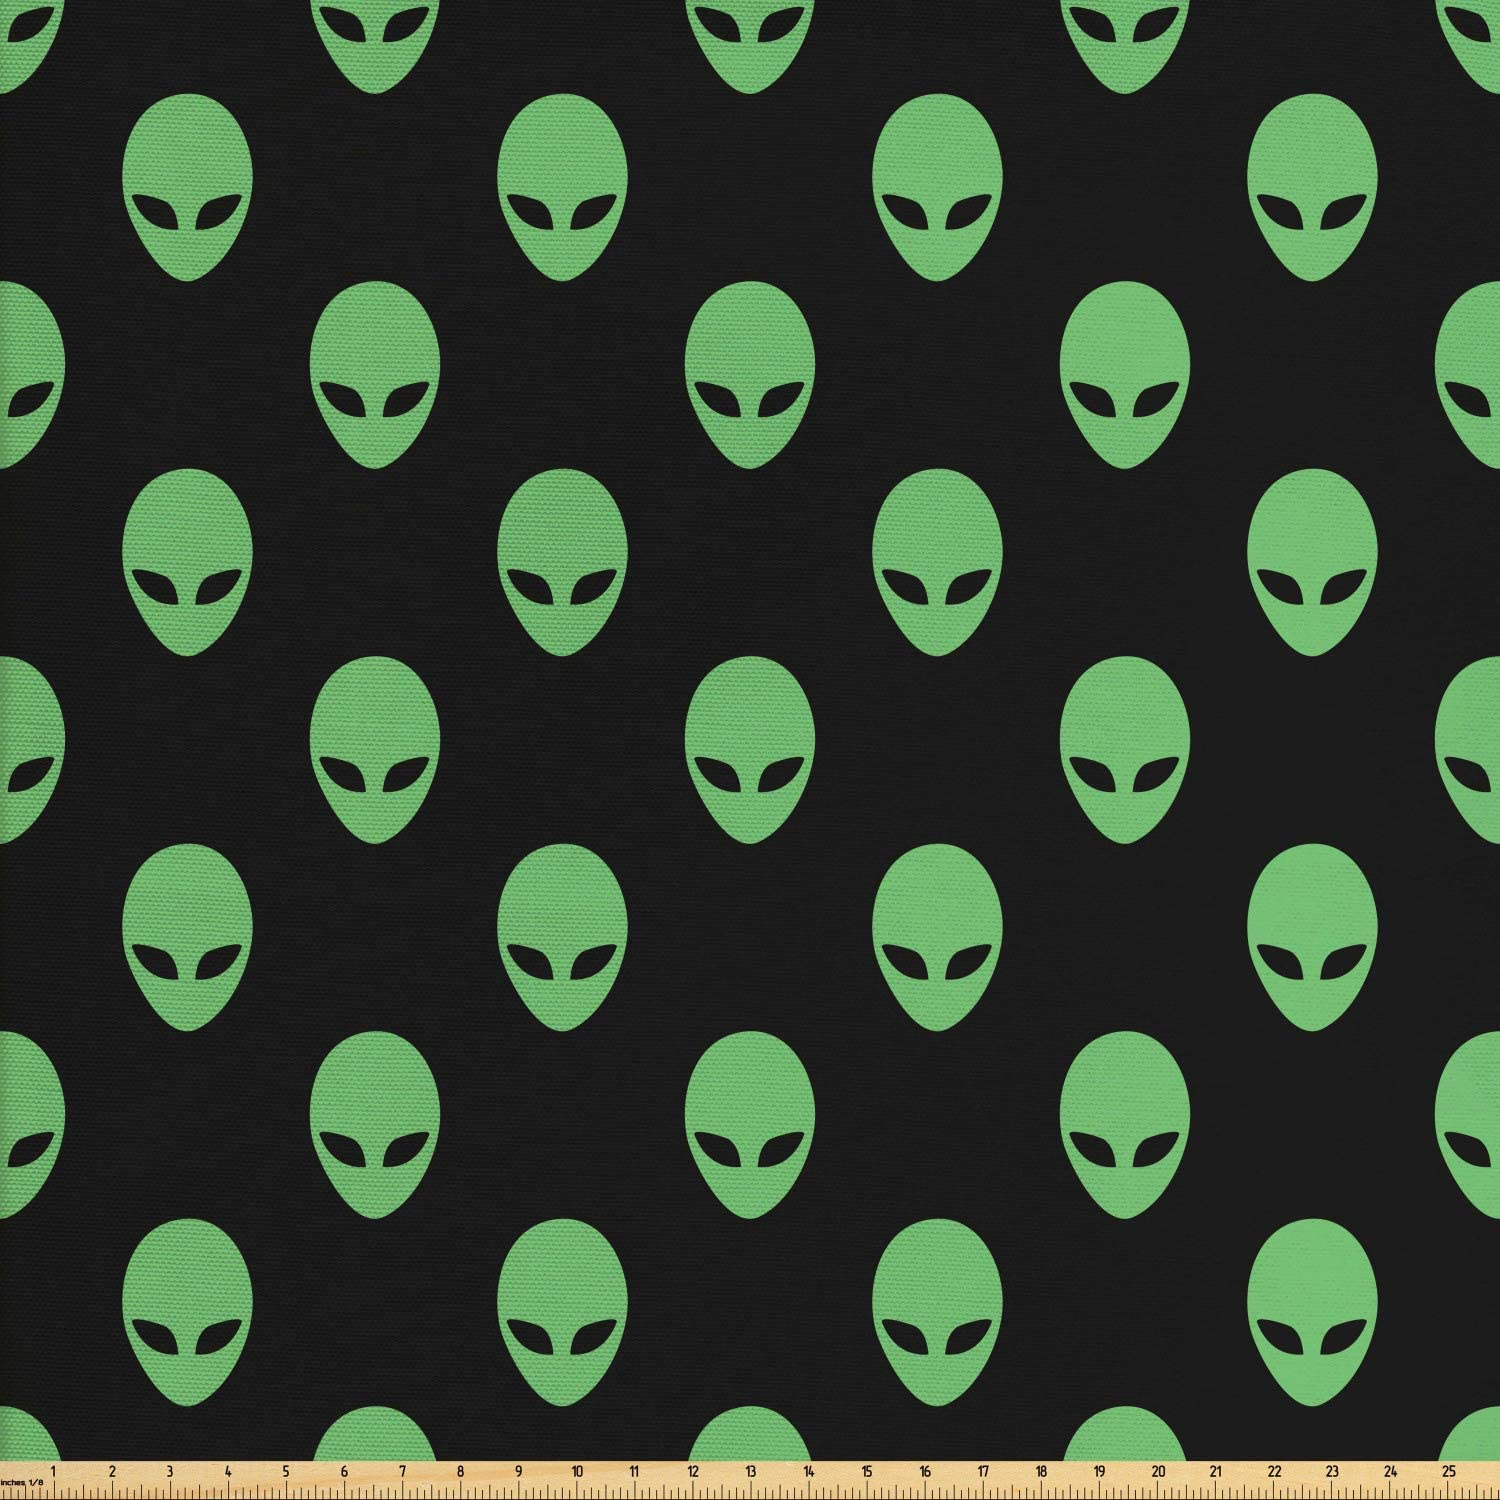 Ambesonne Alien Fabric by The Yard, Supernatural Martiansal Beings from Other Planets Head of an Alien, Decorative Fabric for Upholstery and Home Accents, 1 Yard, Fern Green